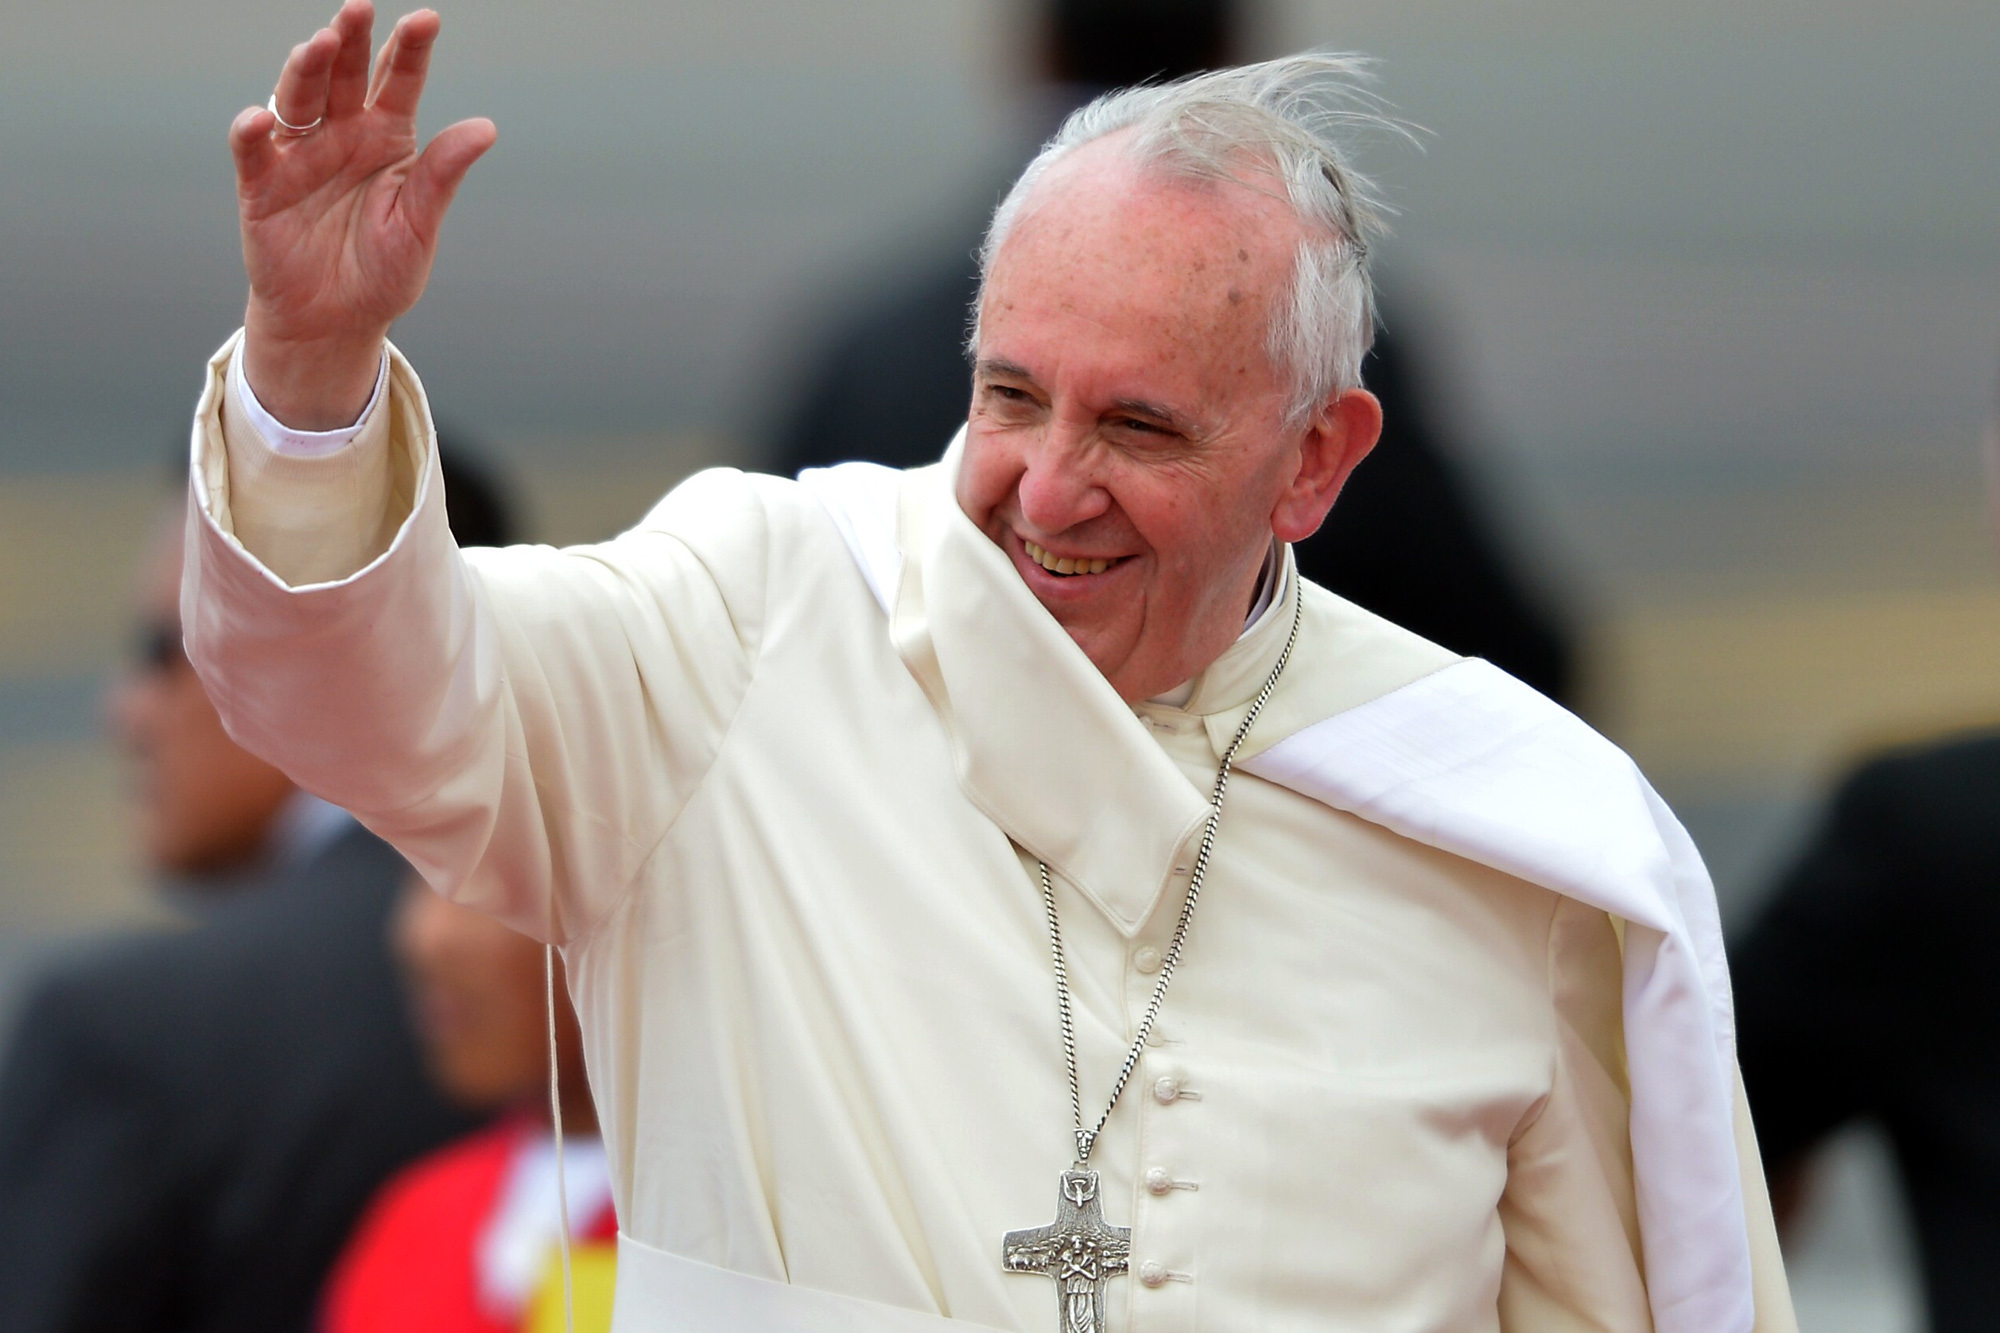 Pope Francis waves at the airport in Quito before his departure for Bolivia, on July 8, 2015. Pope Francis, the first Latin American pontiff, heads Wednesday to Bolivia on the second leg of a three-nation tour of the continent's poorest countries, where he has been acclaimed by huge crowds.     AFP PHOTO / MARTIN BERNETTIMARTIN BERNETTI/AFP/Getty Images